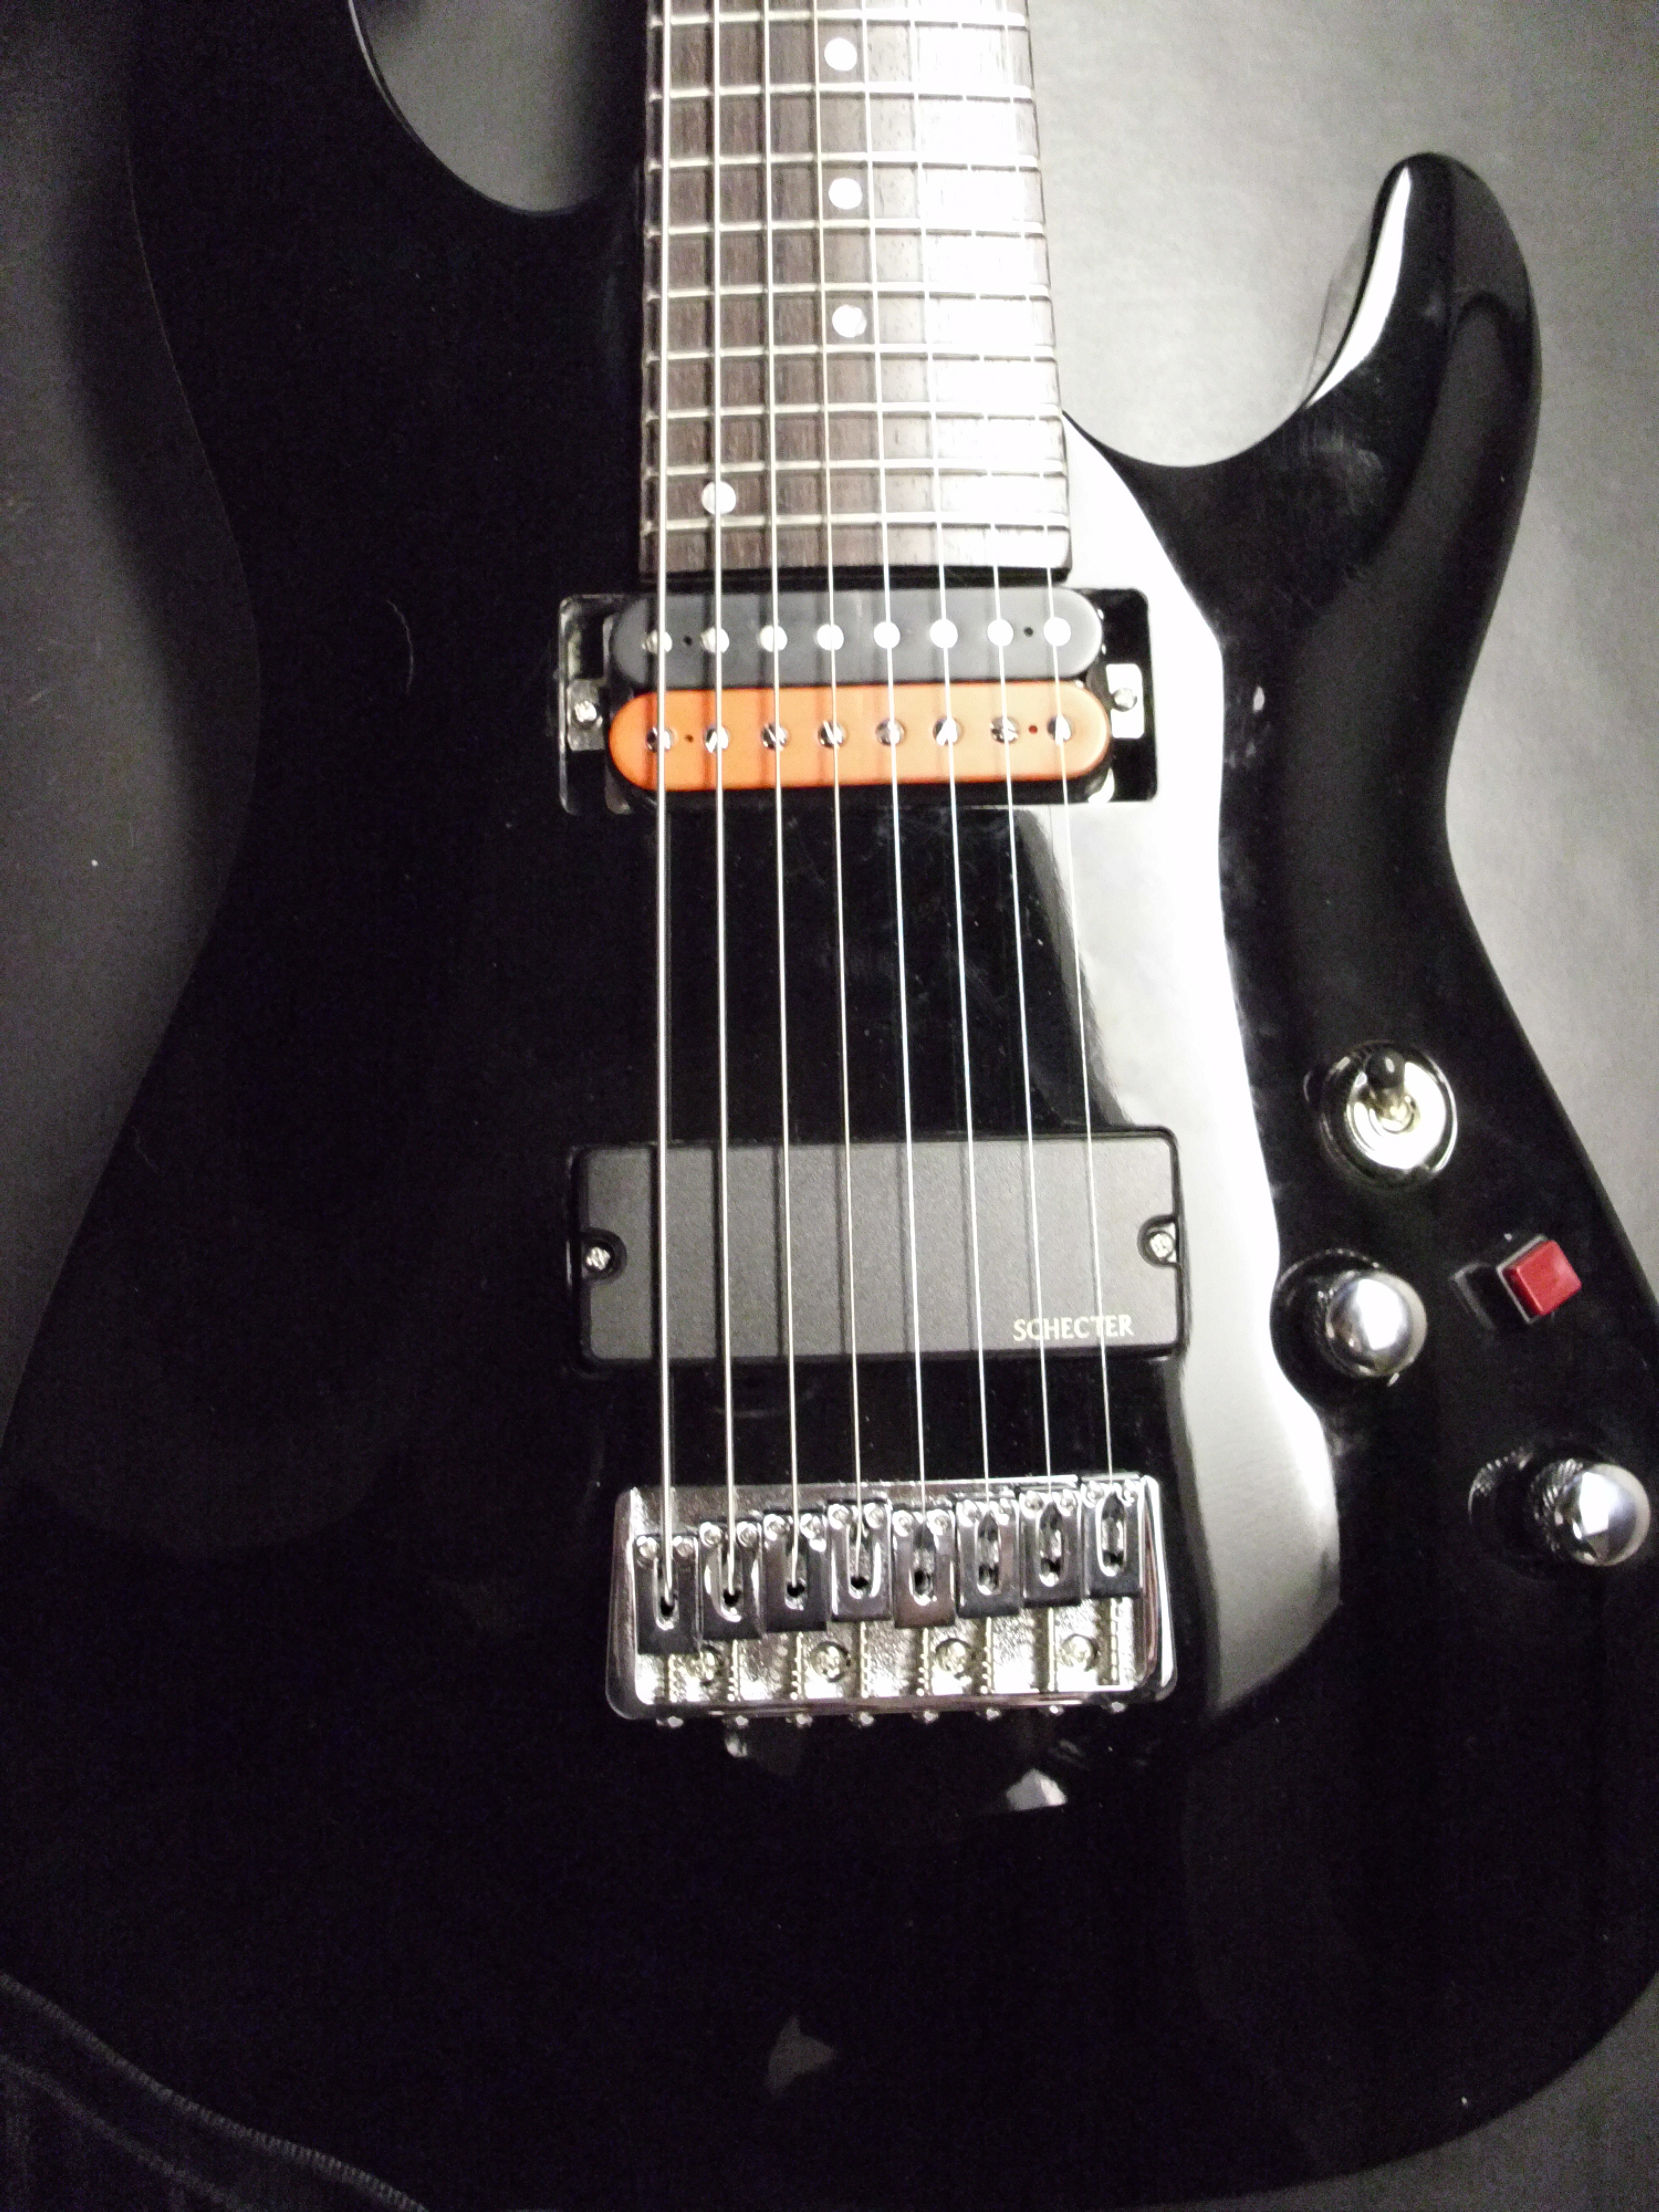 Schecter Guitar Omen 8 Wiring Diagrams Bare Knuckle Pickups